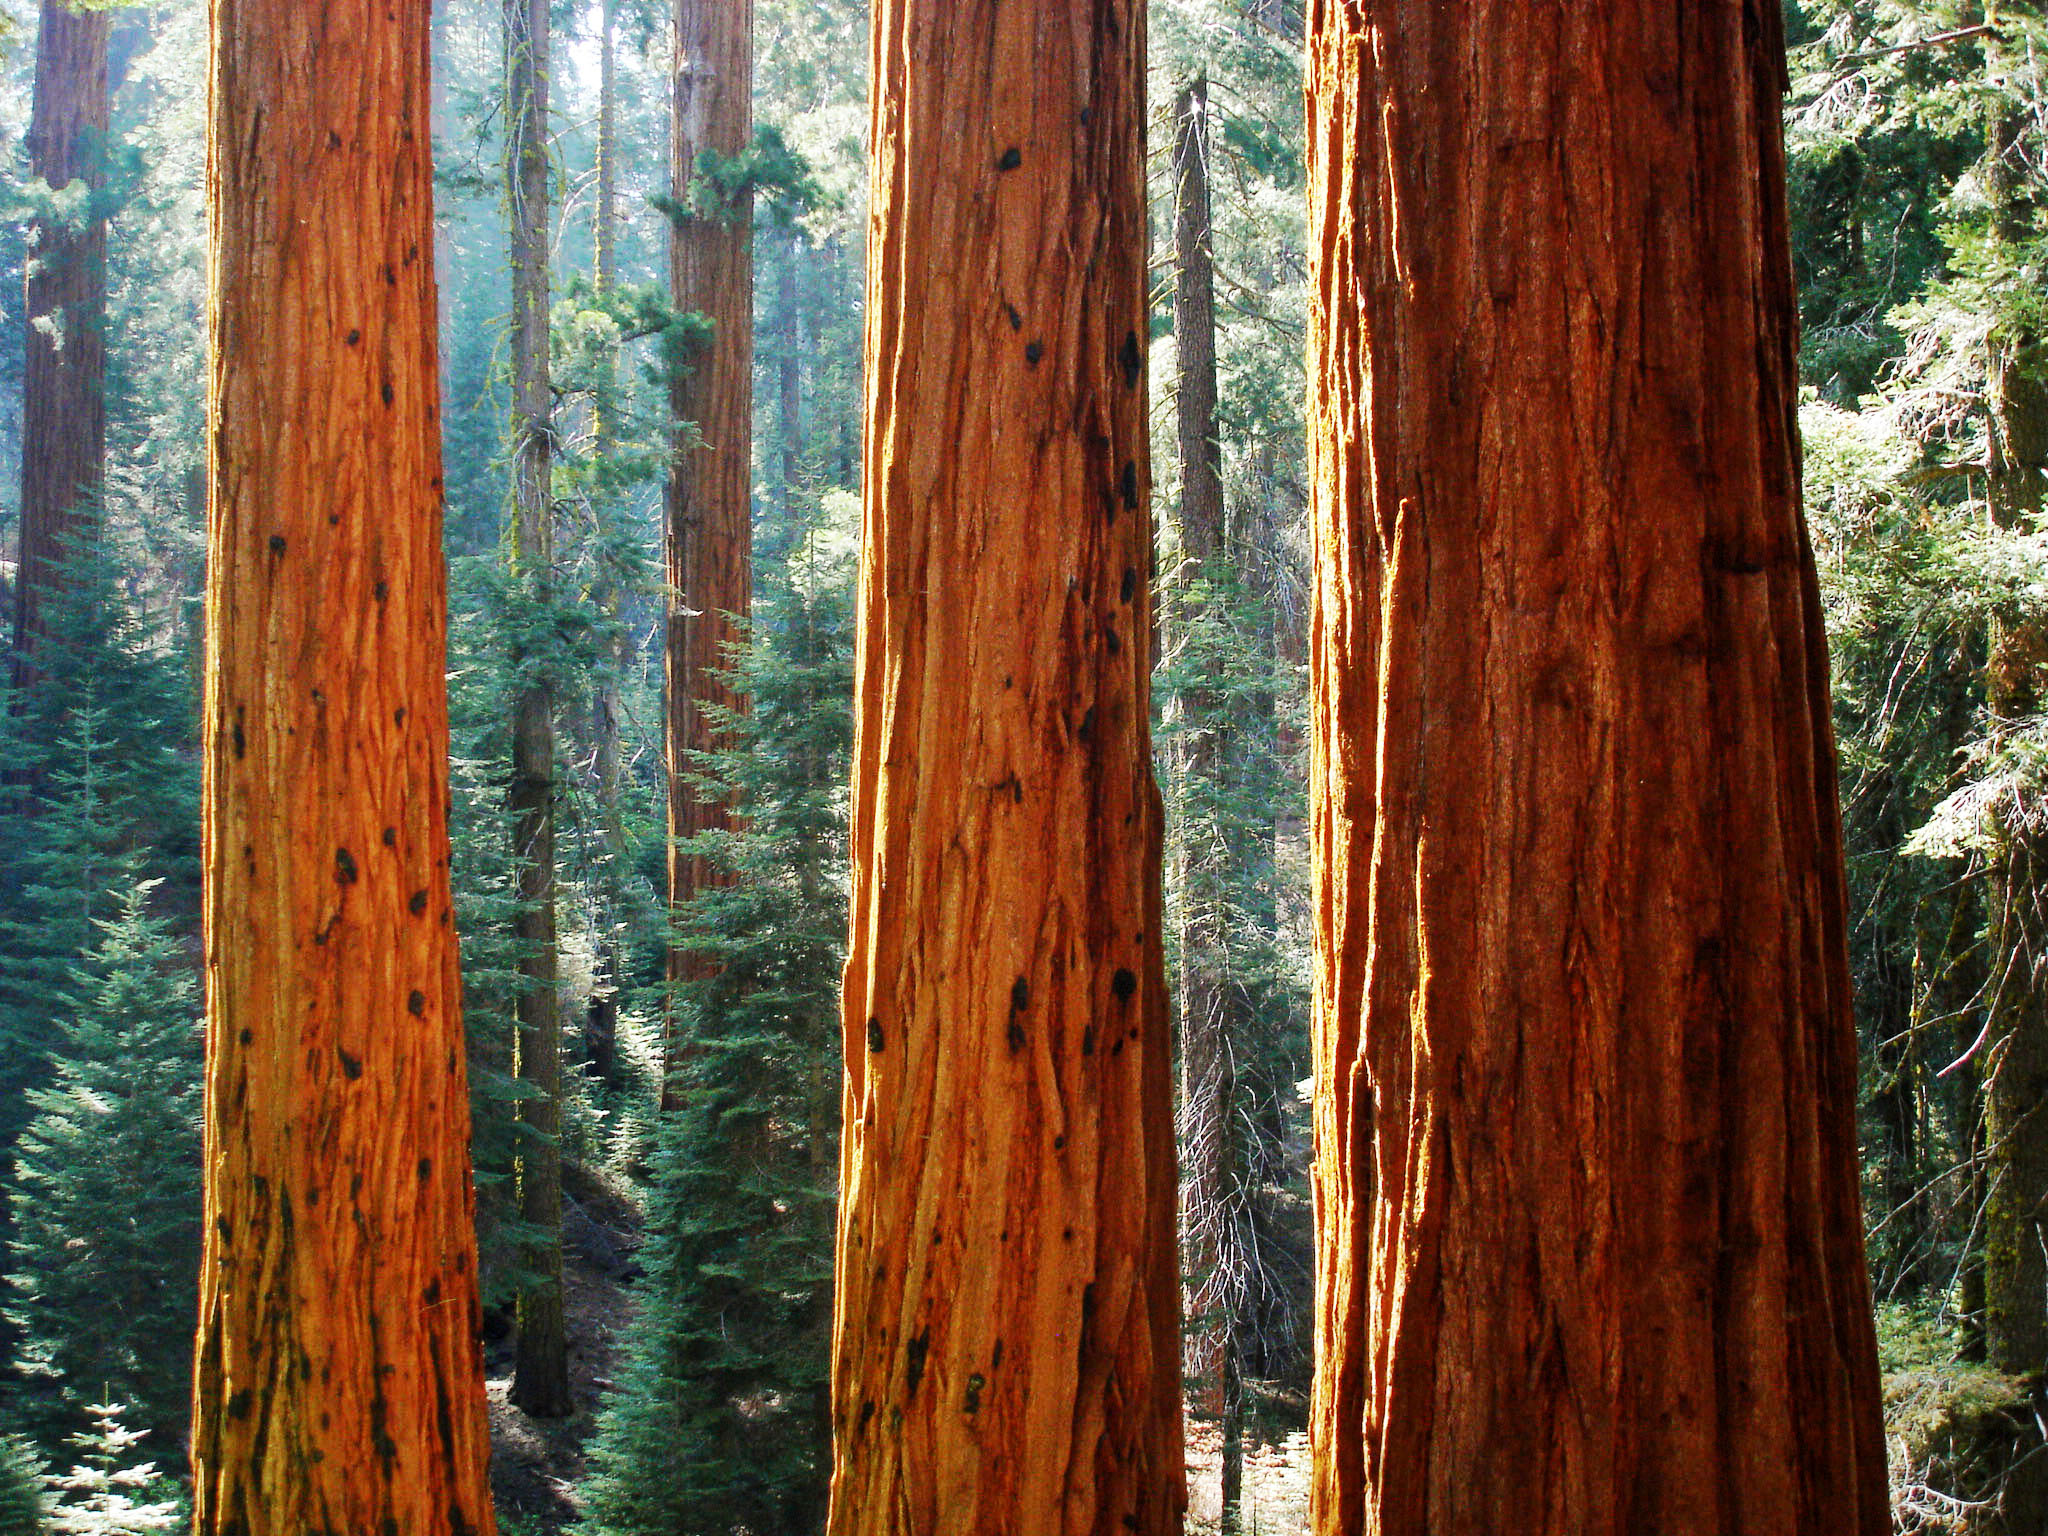 Giant_sequoia_in_Redwood_Canyon_in_Sequoia_National_Park.jpg